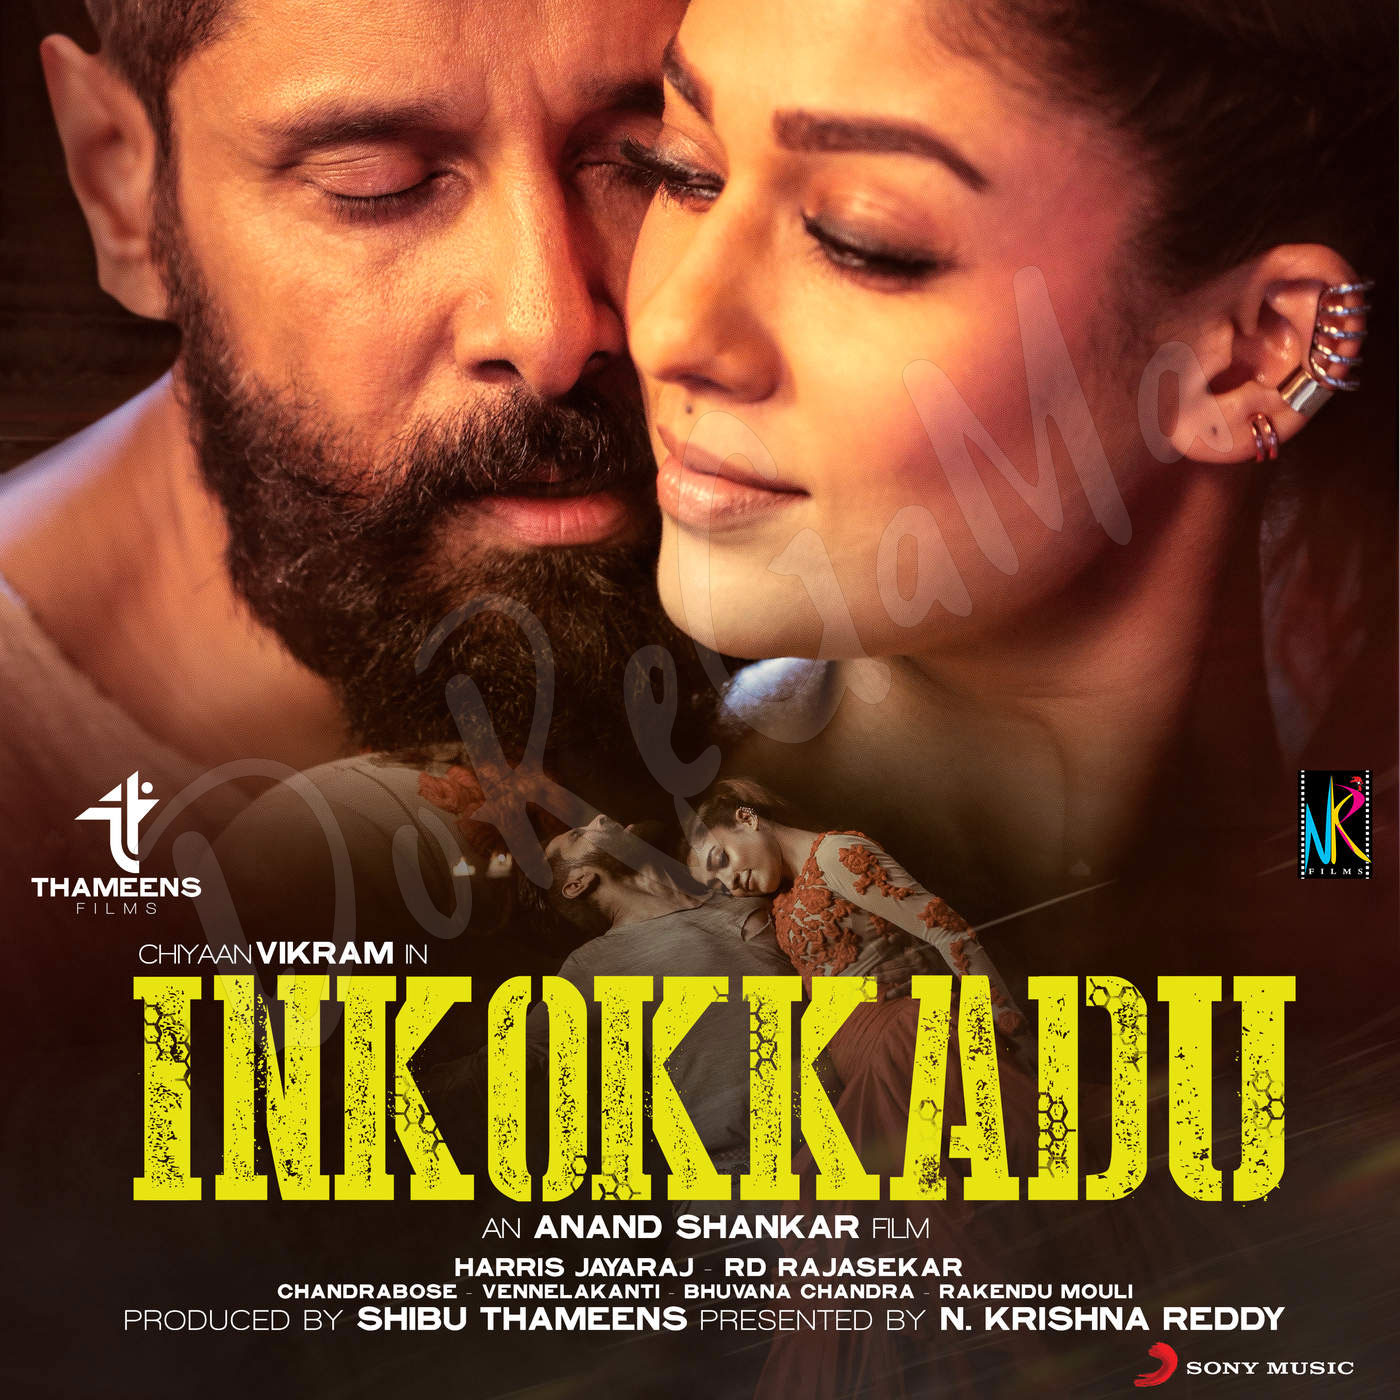 Inkokkadu-2016-CD-fRont-cover-poster-Wallpaper